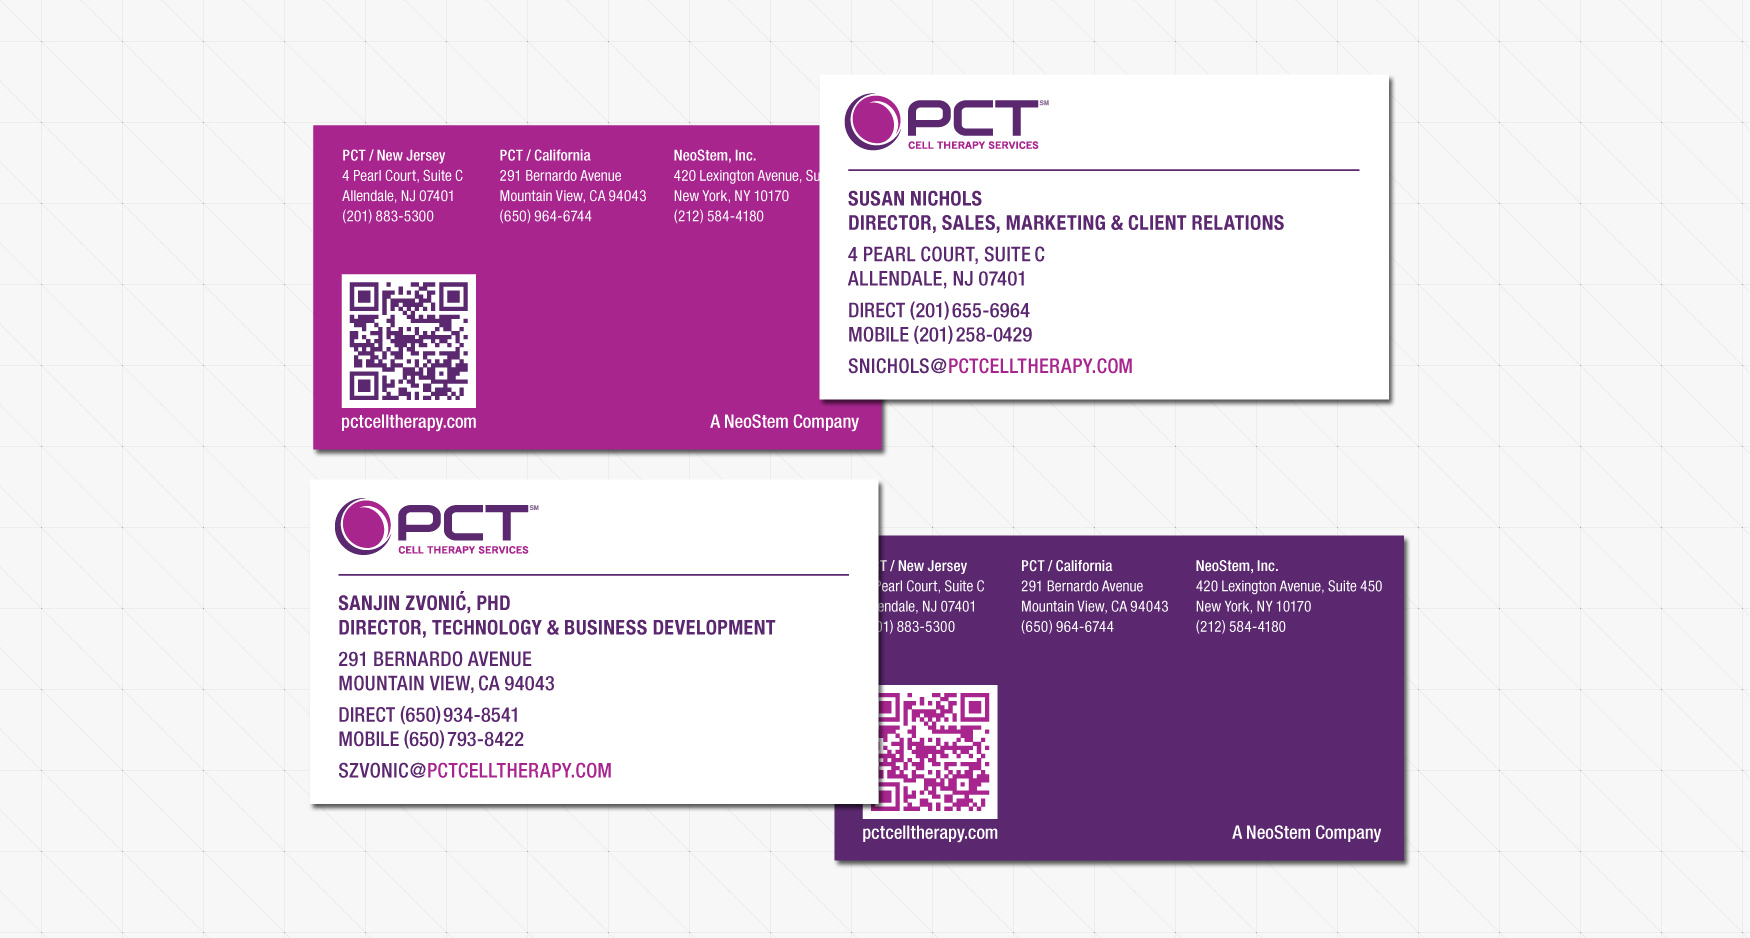 BP Large Website Images2 - PCT CELL THERAPY - STATIONERY